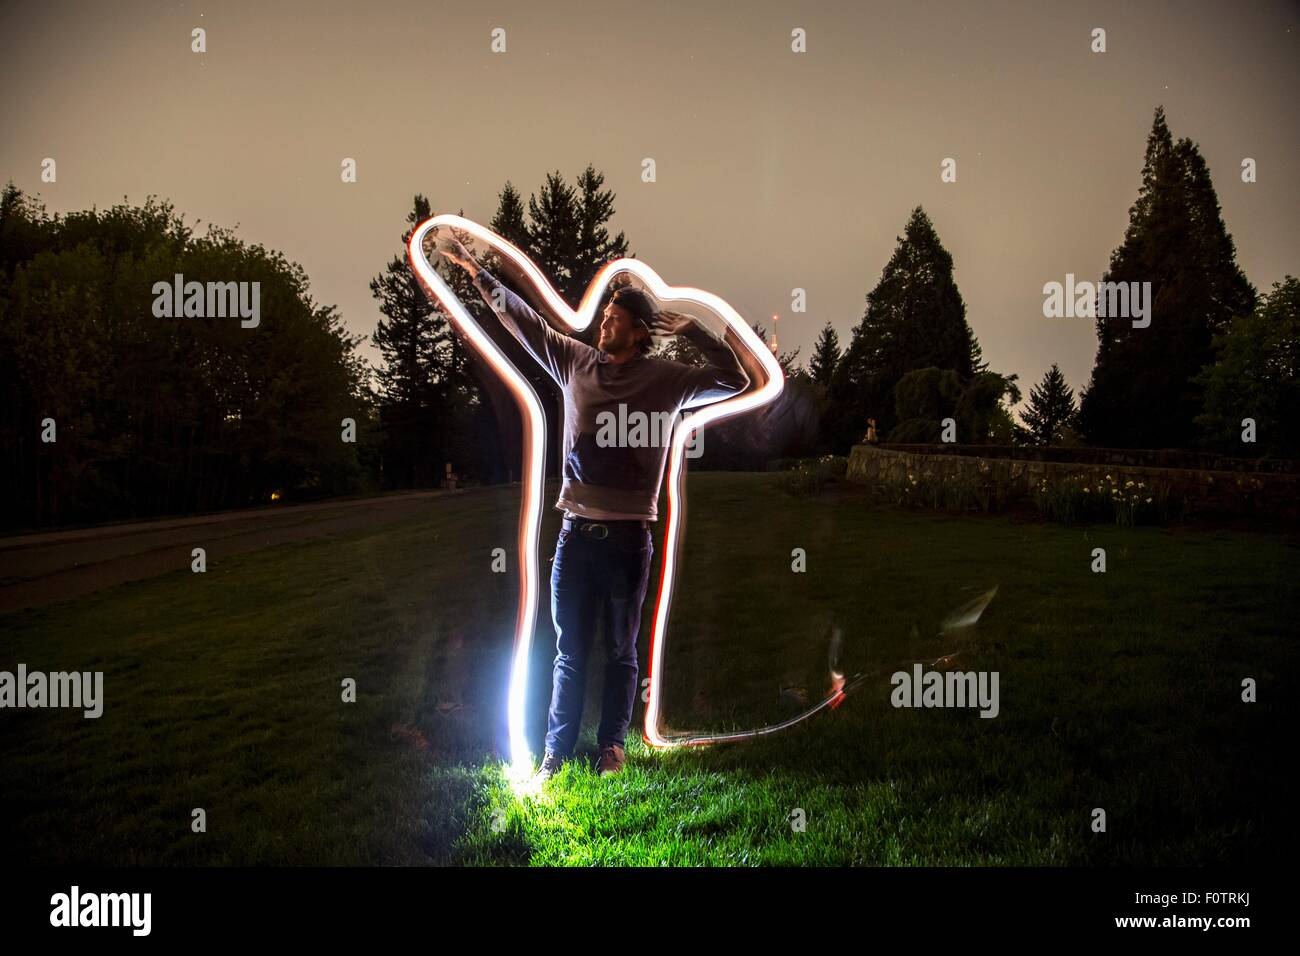 Young man, standing in field at dusk, arm in pointing position, light trail tracing body shape - Stock Image